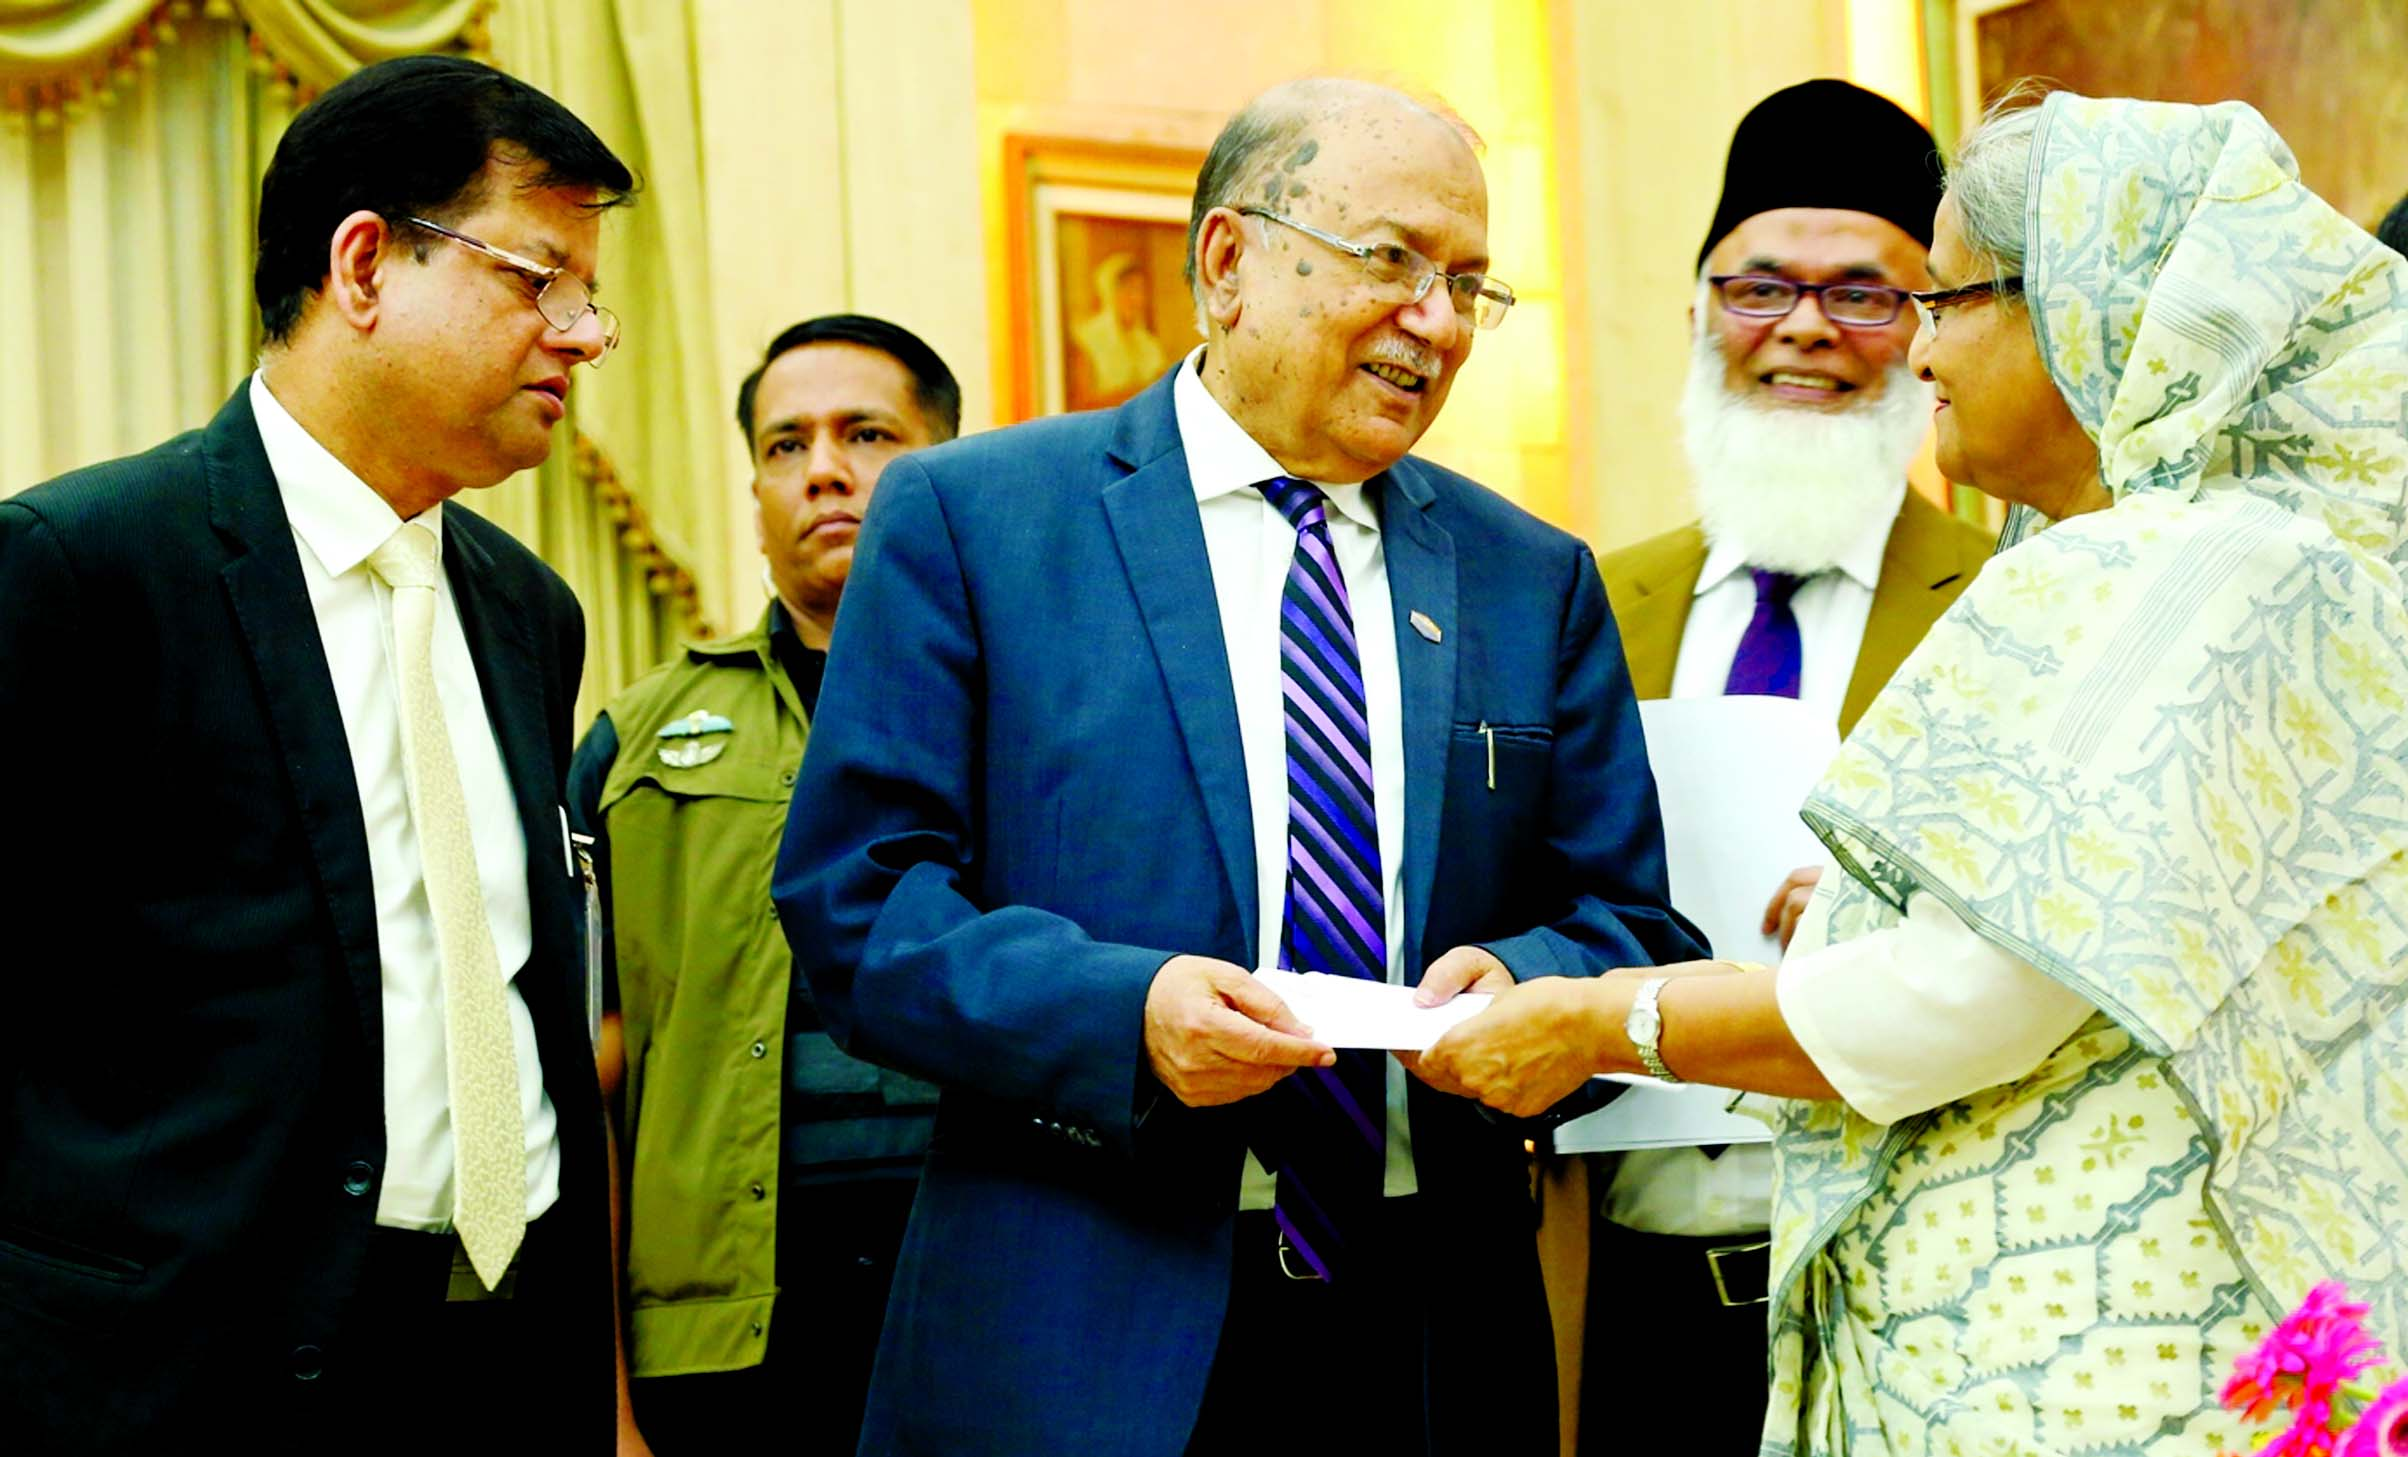 Standard Bank Ltd. donated Tk 7.5 million to the Prime Minister's Relief Fund to help the flood affected people. Kazi Akram Uddin Ahmed, Chairman of the Bank handed over the Cheque to the Prime Minister Sheikh Hasina at Ganobhaban on Tuesday. Managing Director and CEO of the Bank Md. Nazmus Salehin was present on the occasion.